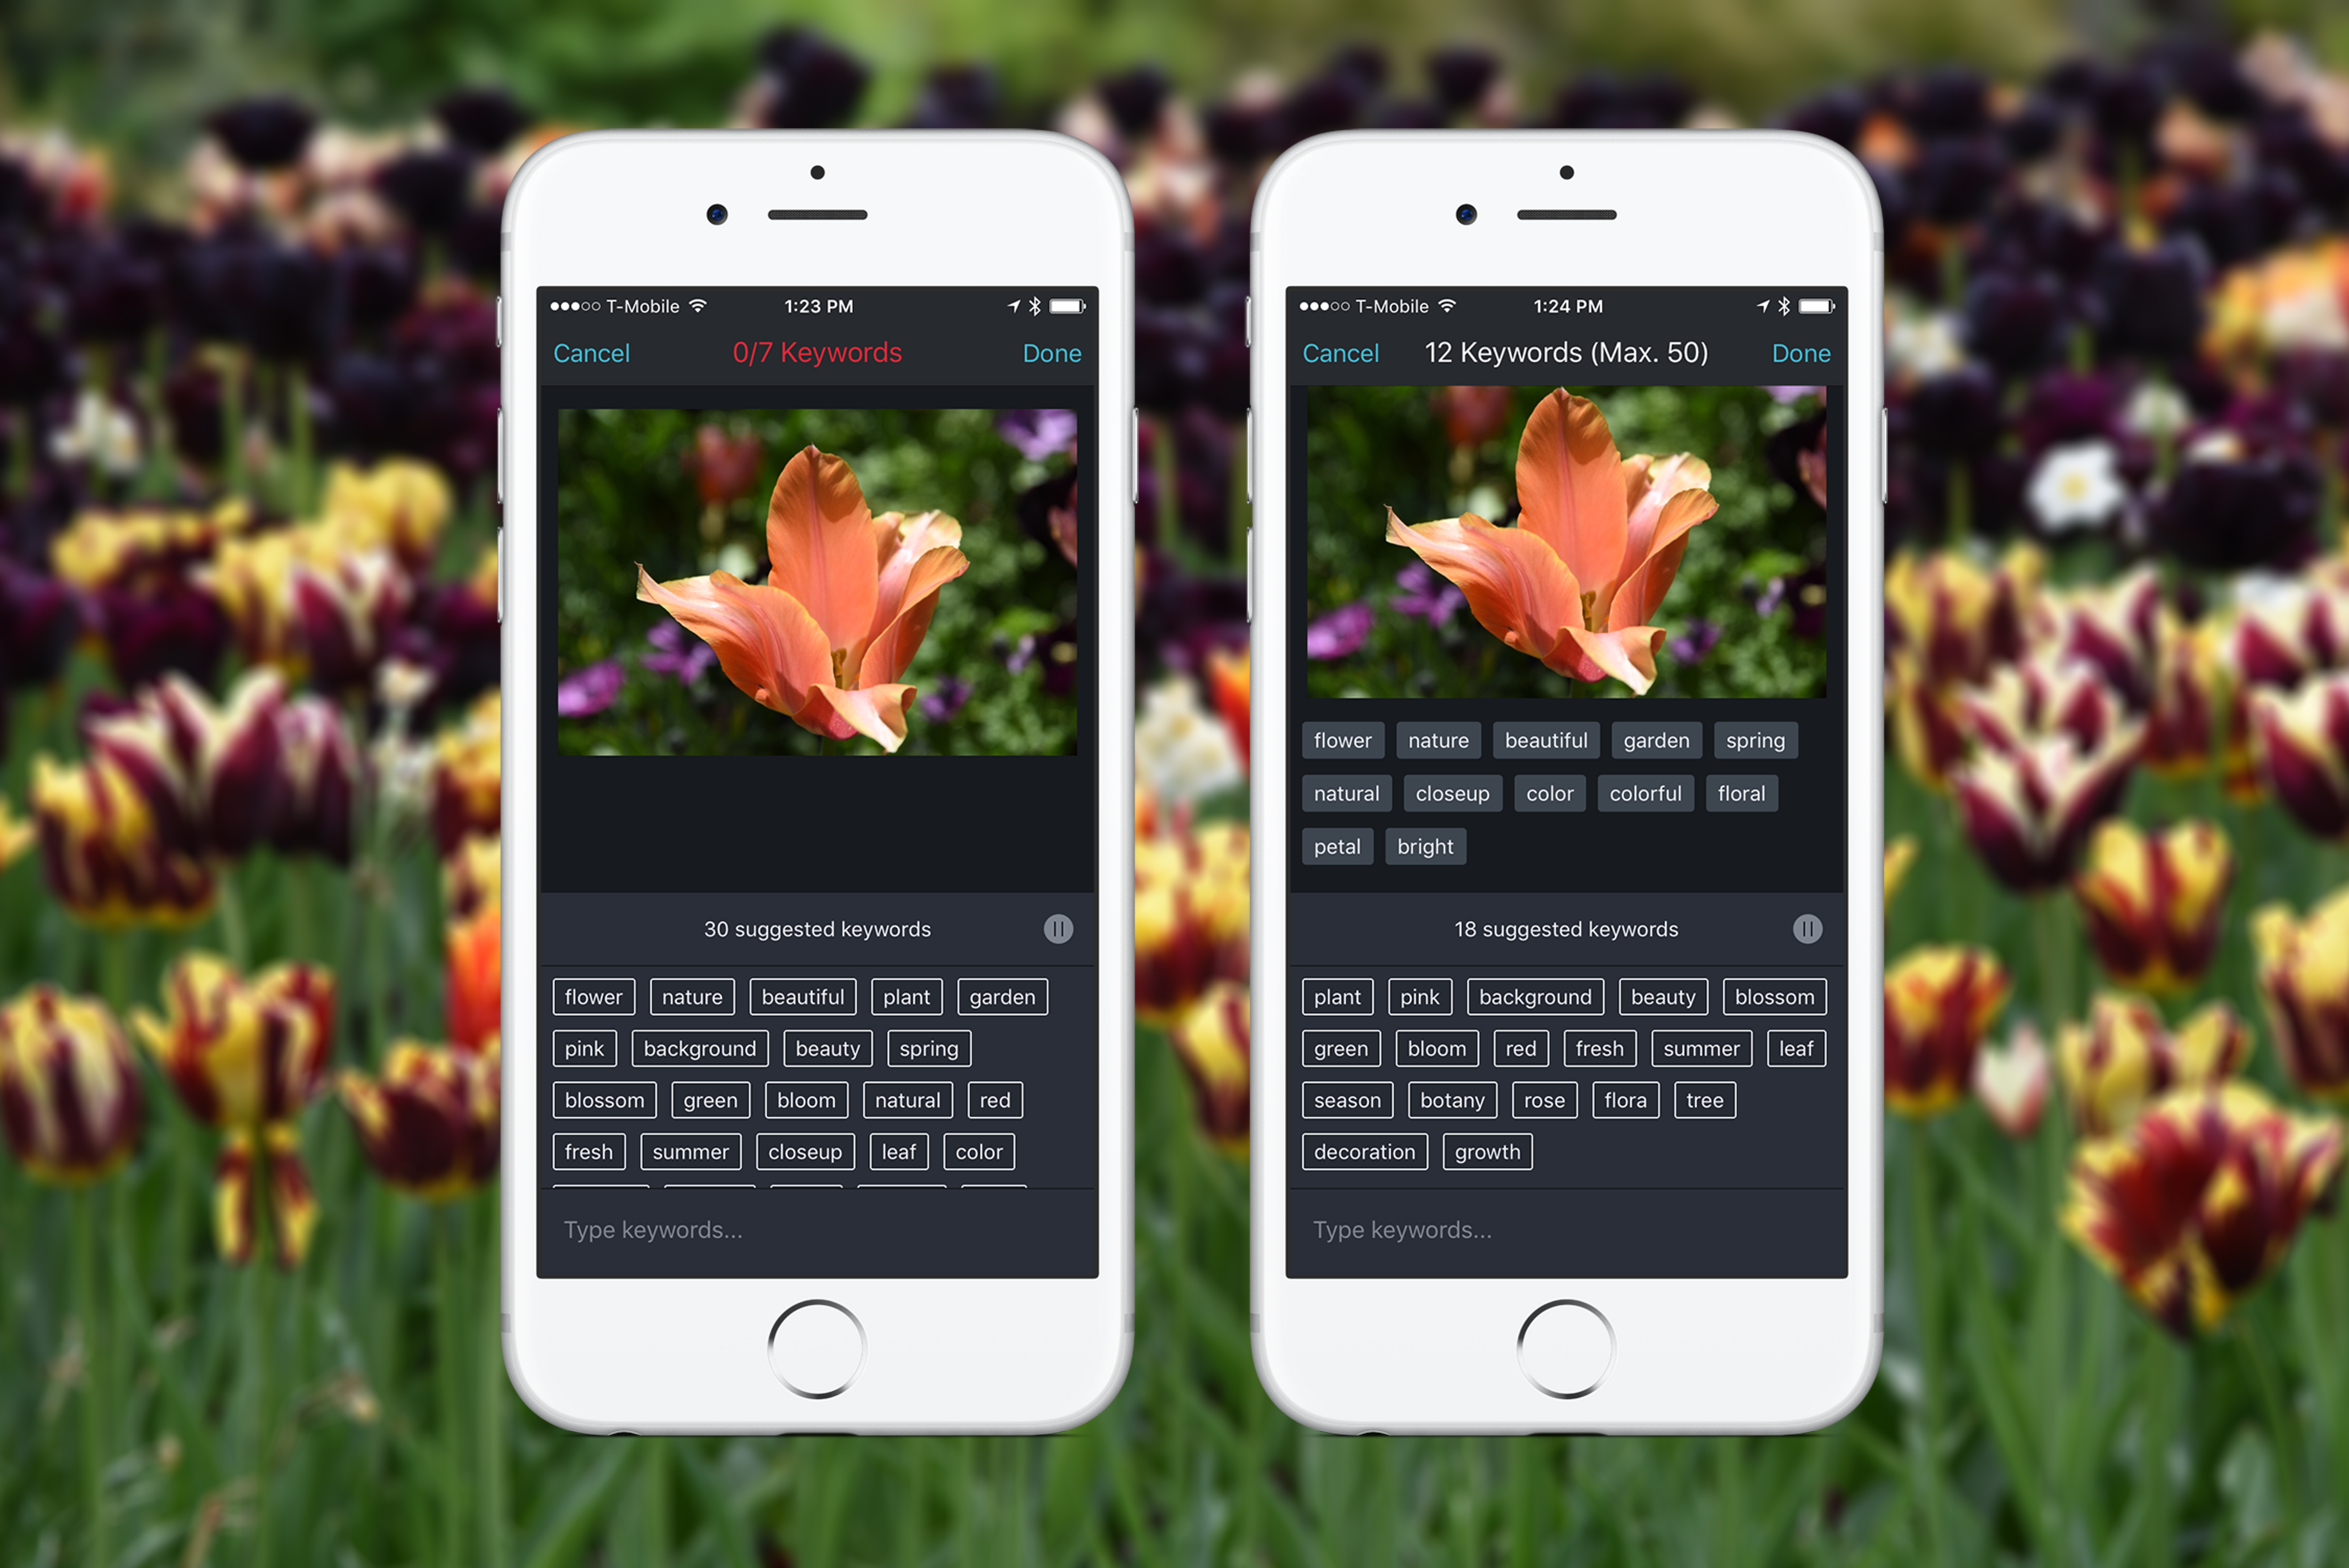 Shutterstock releases a keyword suggestion tool for iPhone that uses artificial intelligence